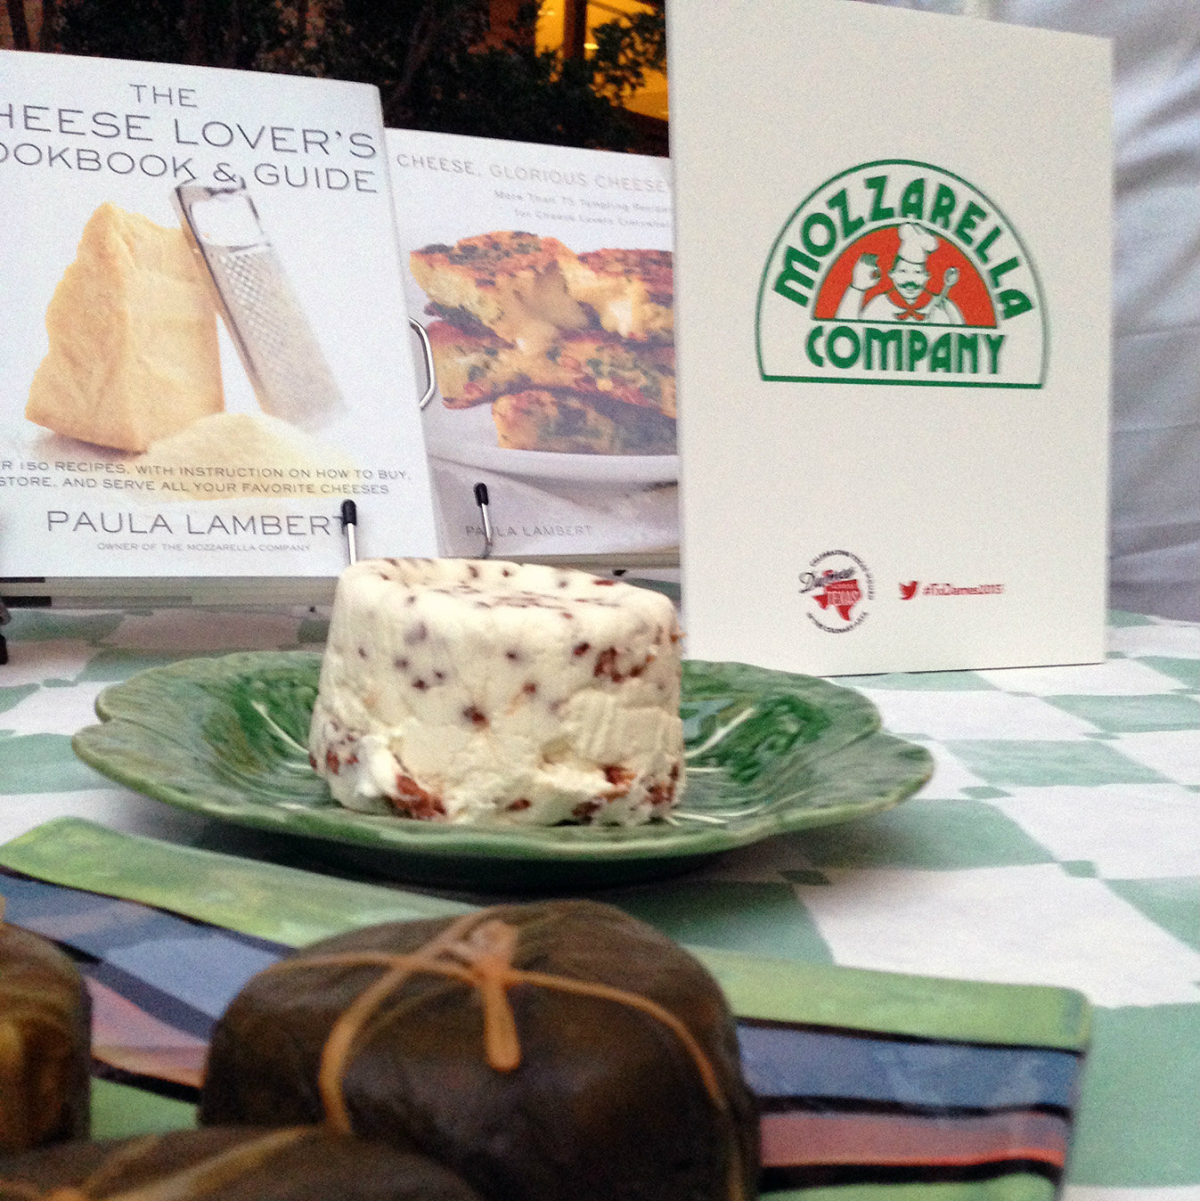 Mozzarella Company at Dames Across Texas event